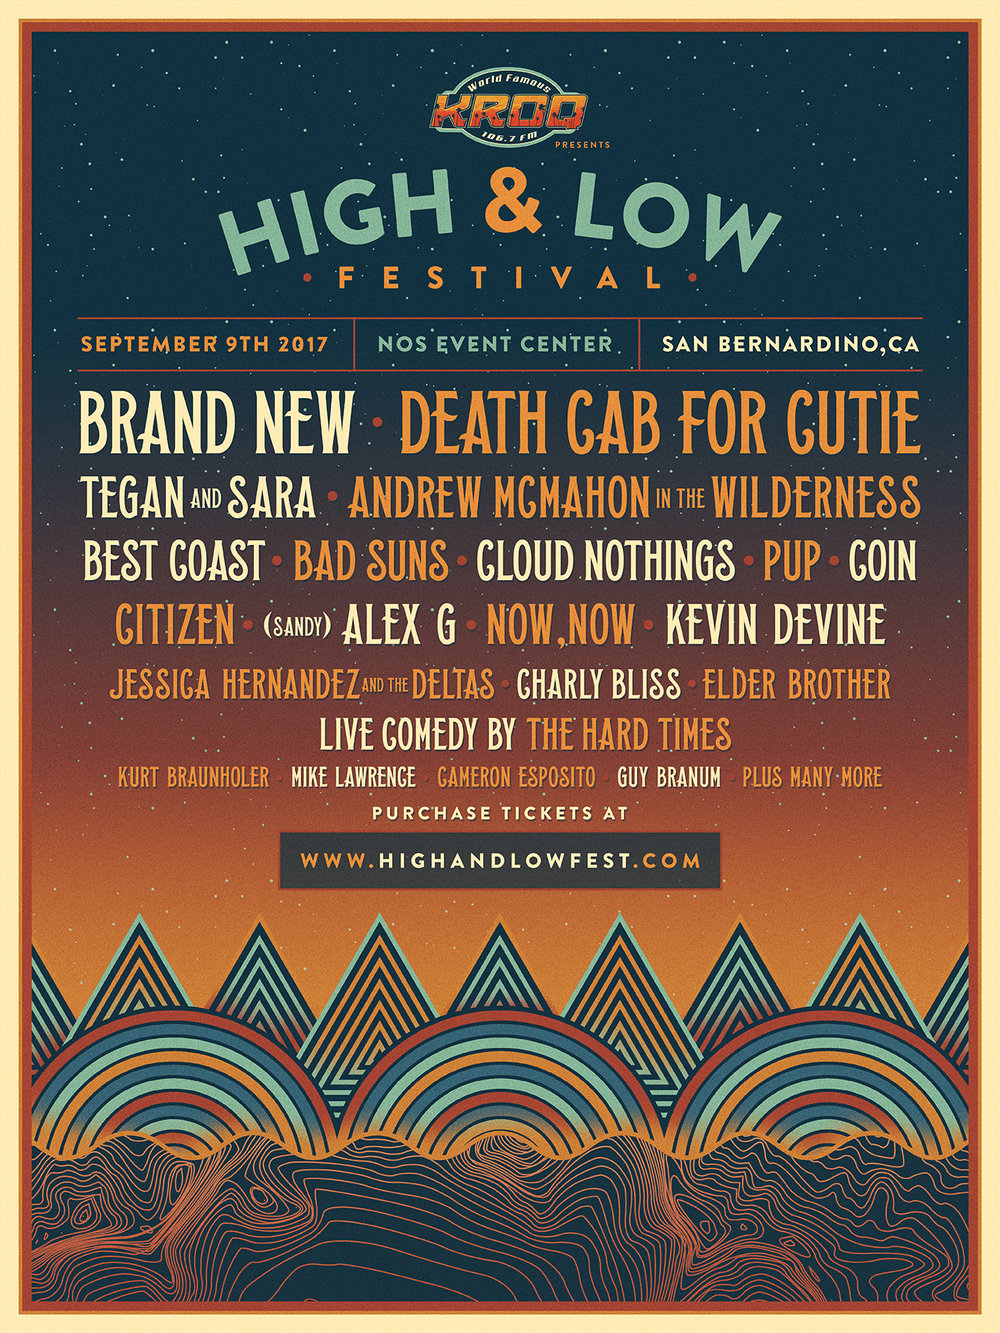 Soundigest will be at High & Low Festival, will you?